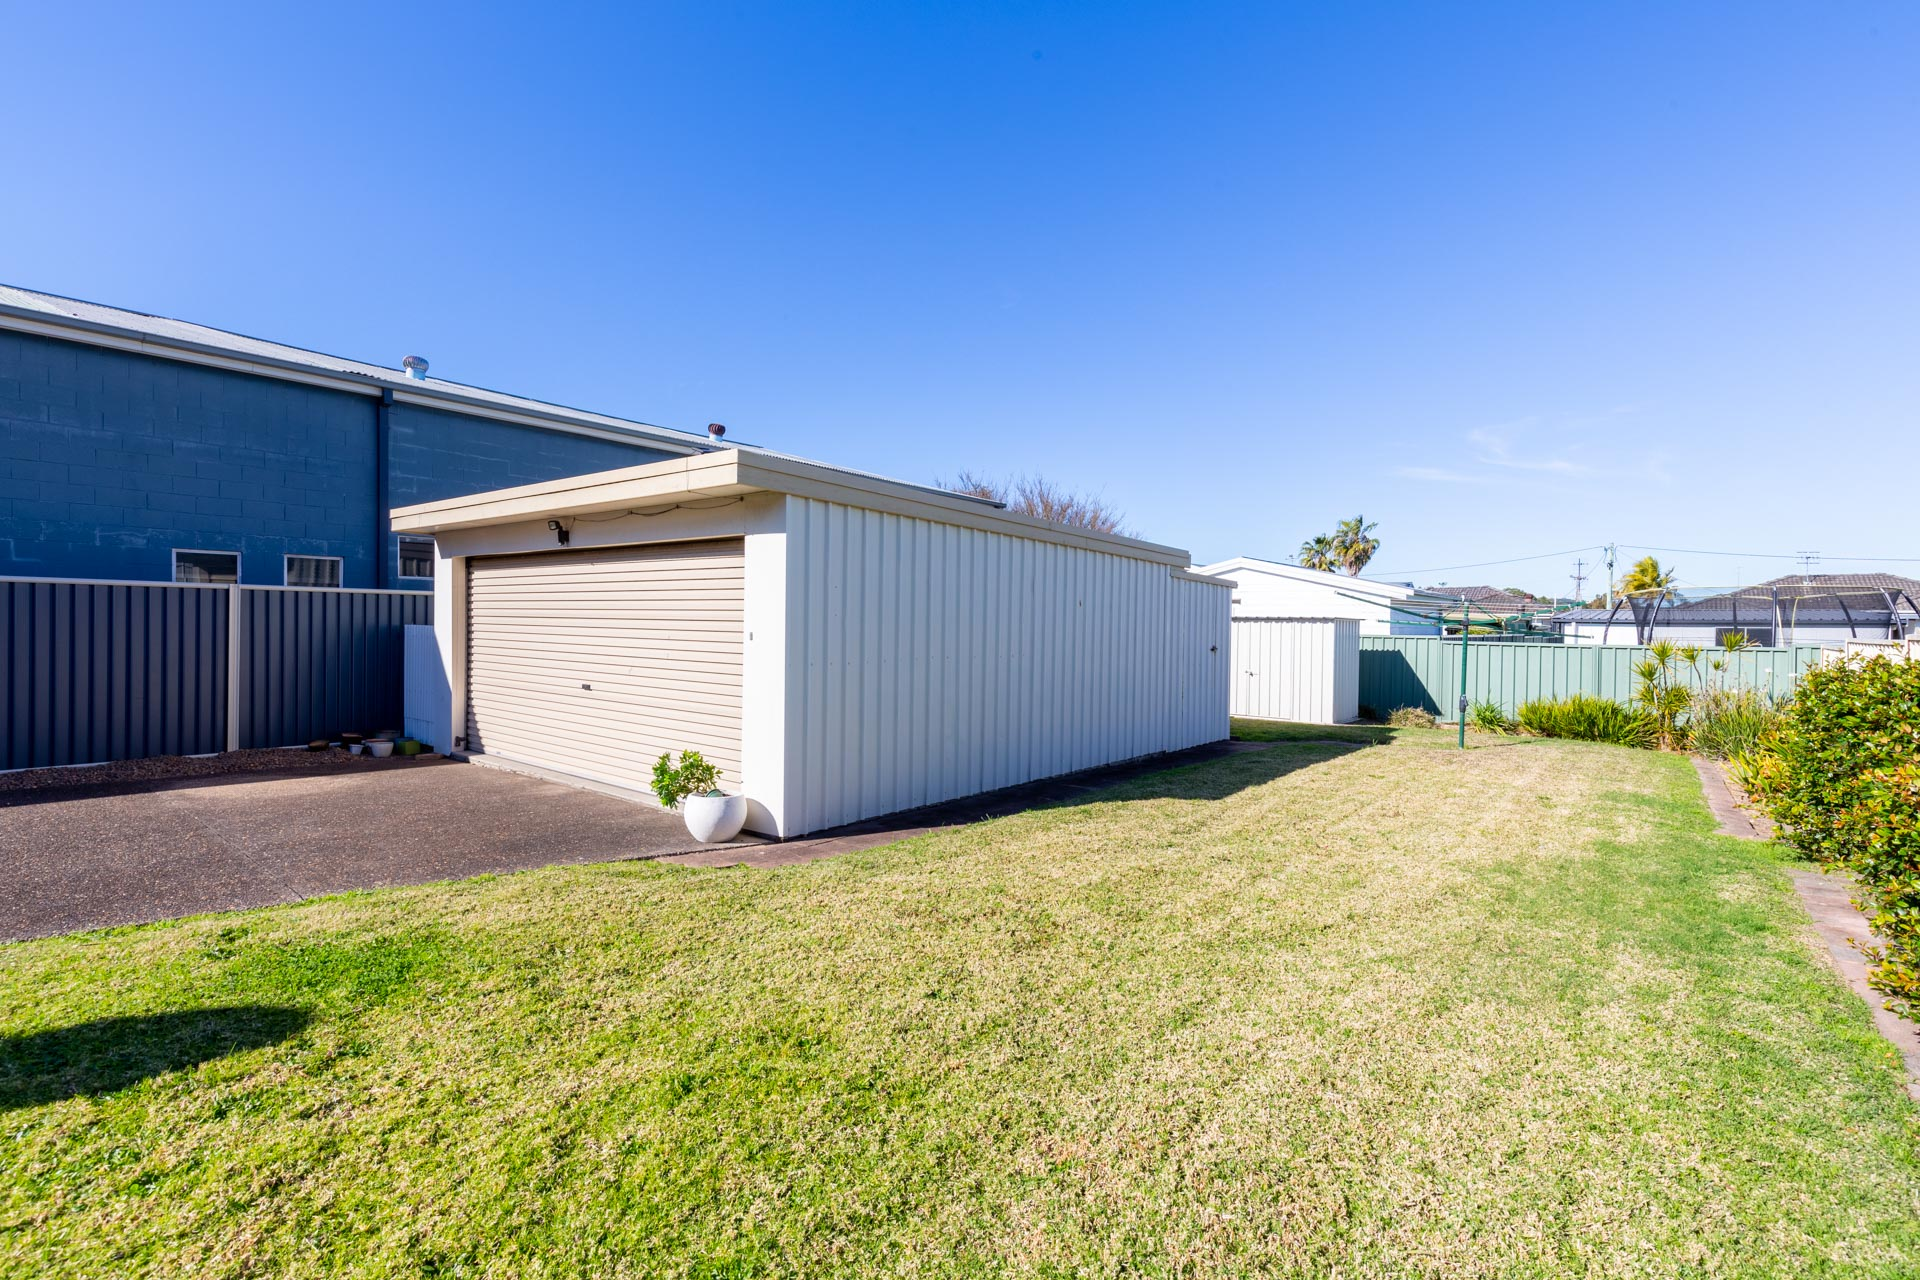 70 Medcalf St   Warners Bay (9 of 18)